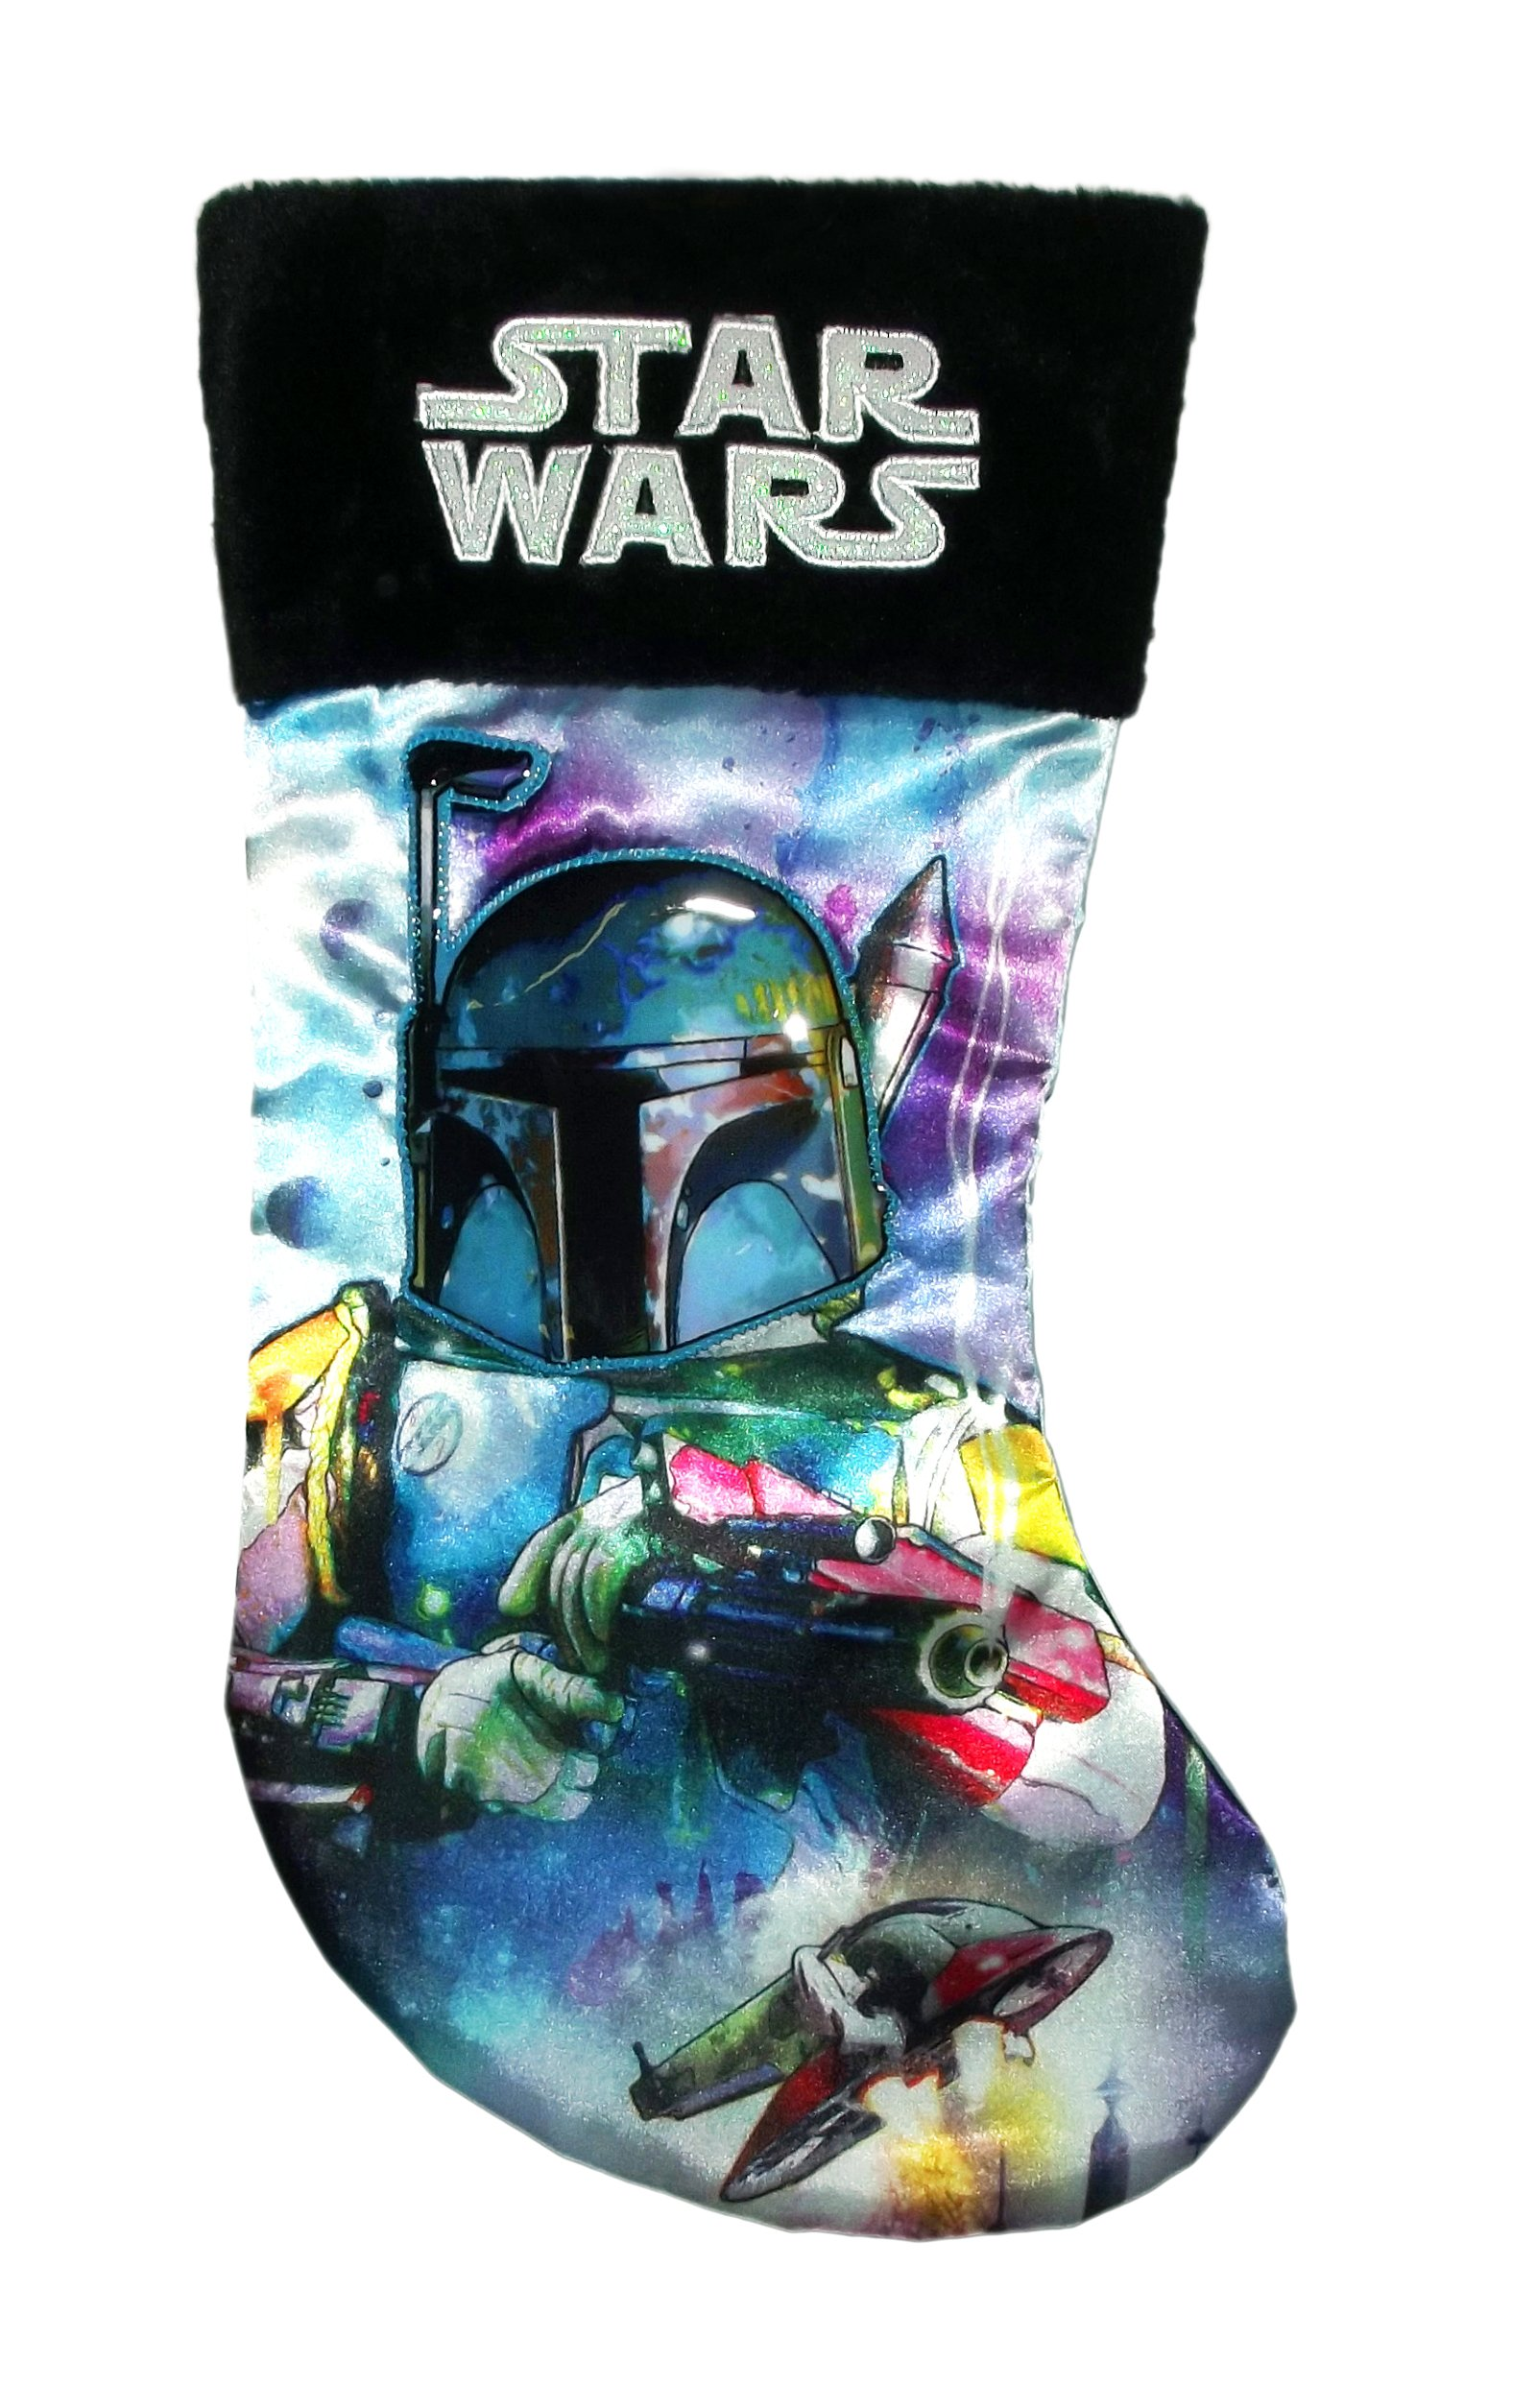 19-Inch Star Wars Boba Fett Applique Stocking by Kurt Adler